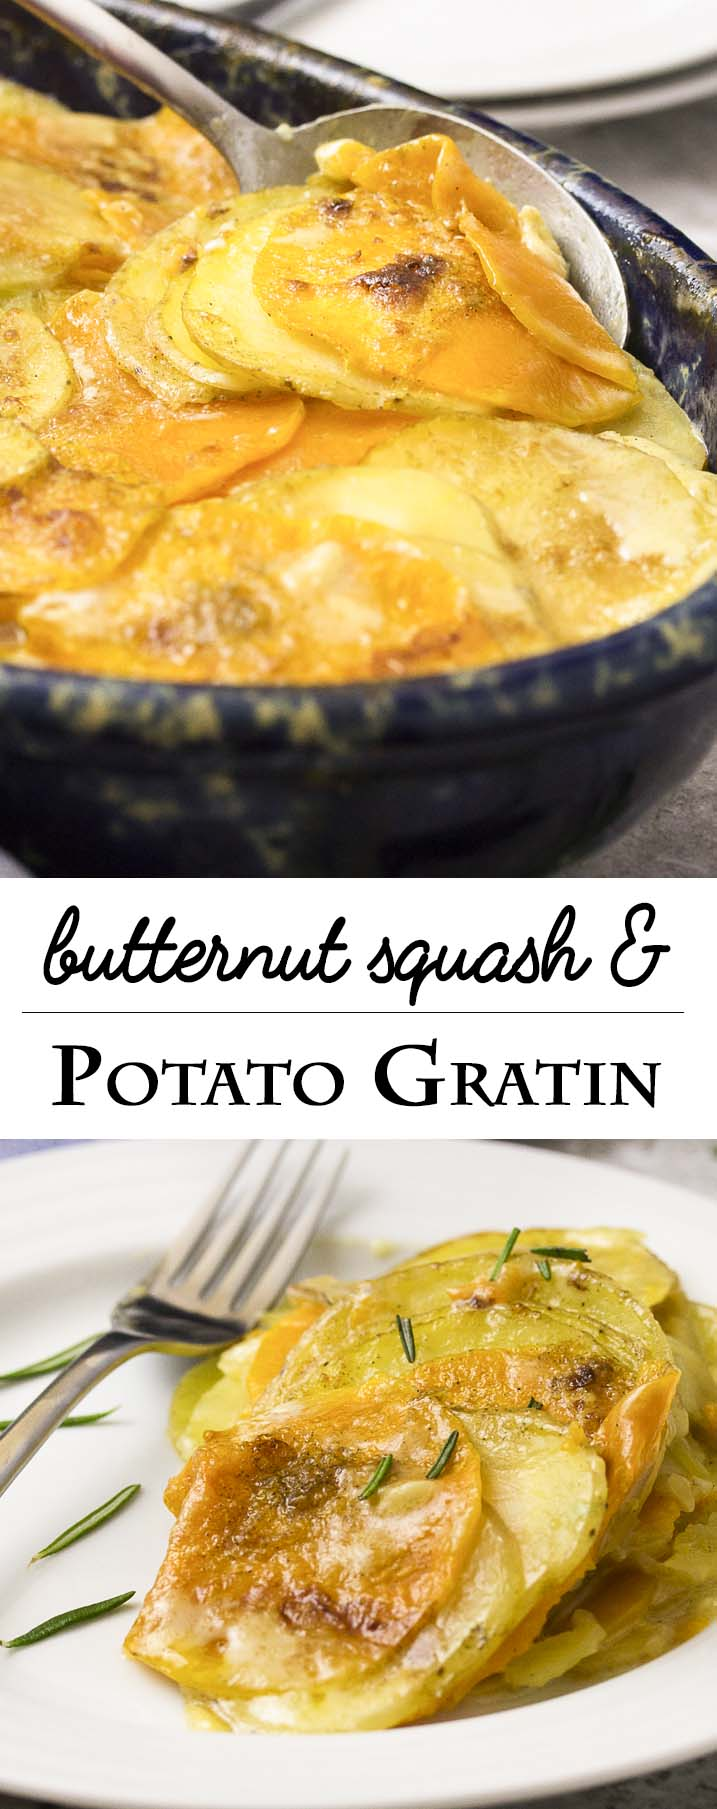 Thinly sliced winter squash and yellow potatoes are layered with brie, then baked until meltingly tender in this winter comfort food recipe for butternut squash potato gratin. | justalittlebitofbacon.com